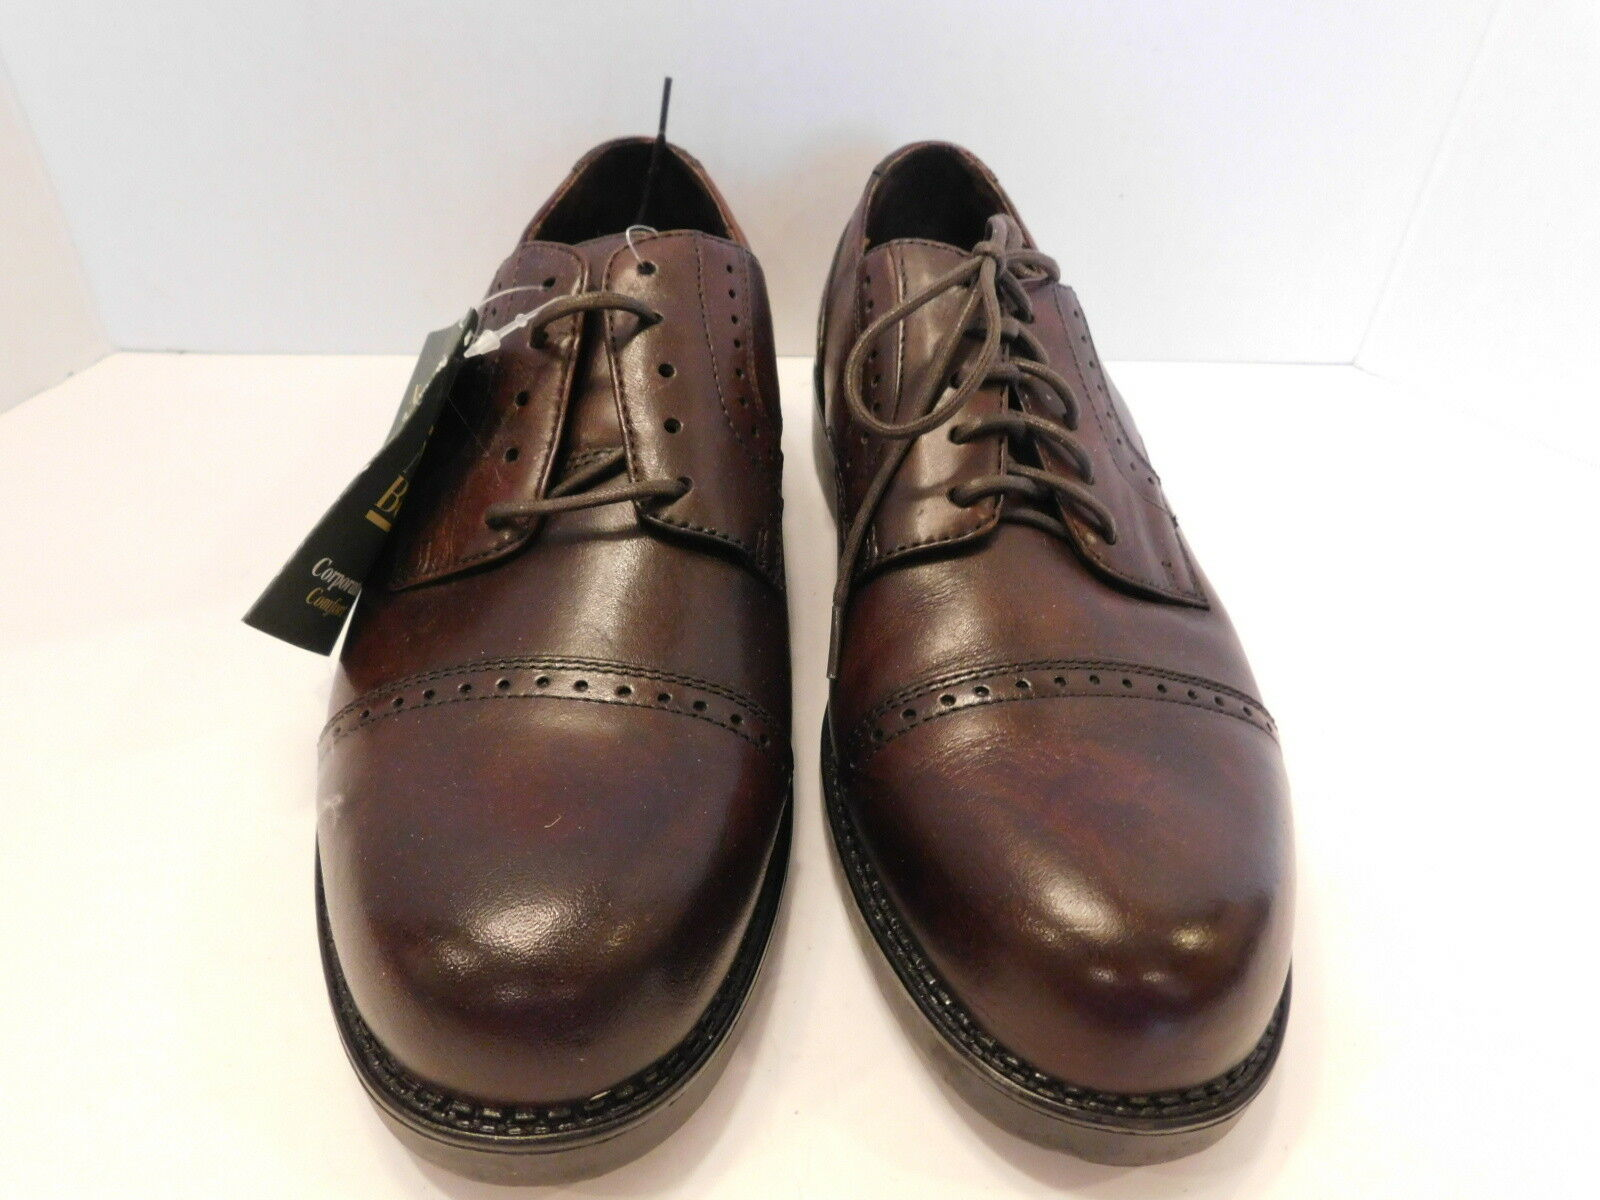 NEW NUNN BUSH MENS SHOES BROWN CORPORATE CASUAL OXFORD SHOES MENS SIZE 10 D a9bfcf